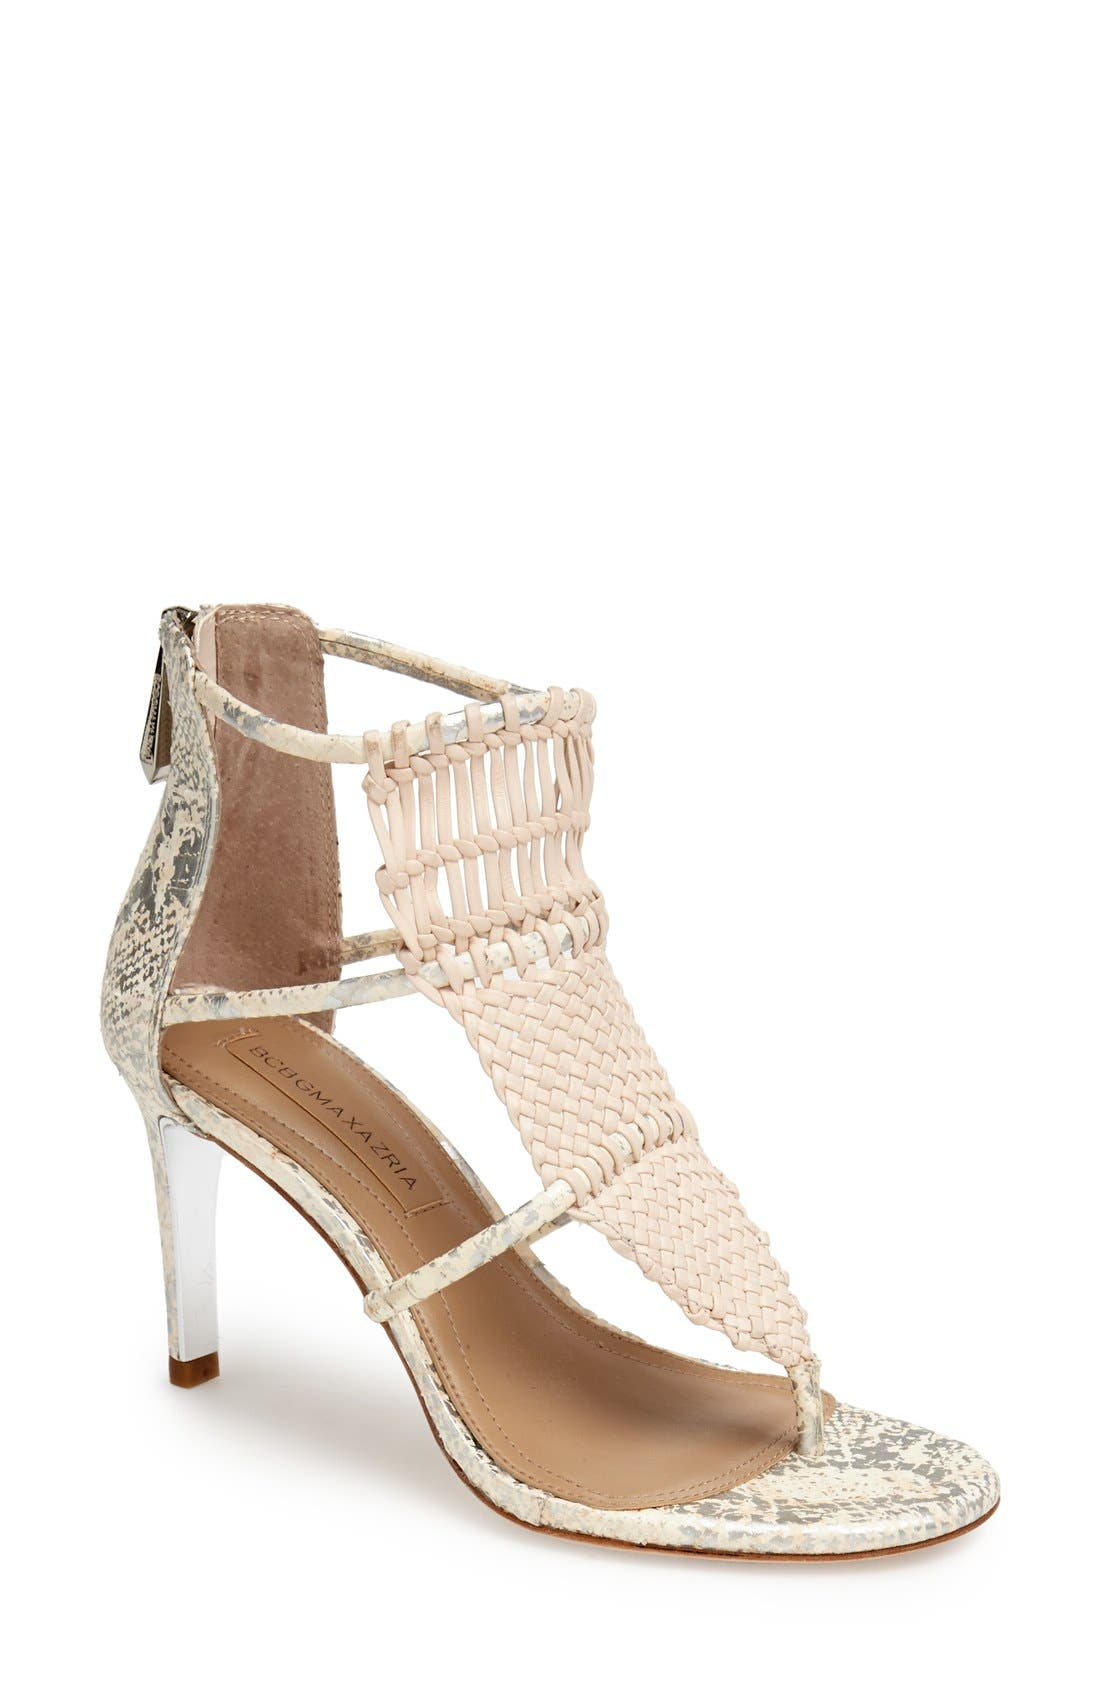 Main Image - BCBGMAXAZRIA Caged Leather Sandal